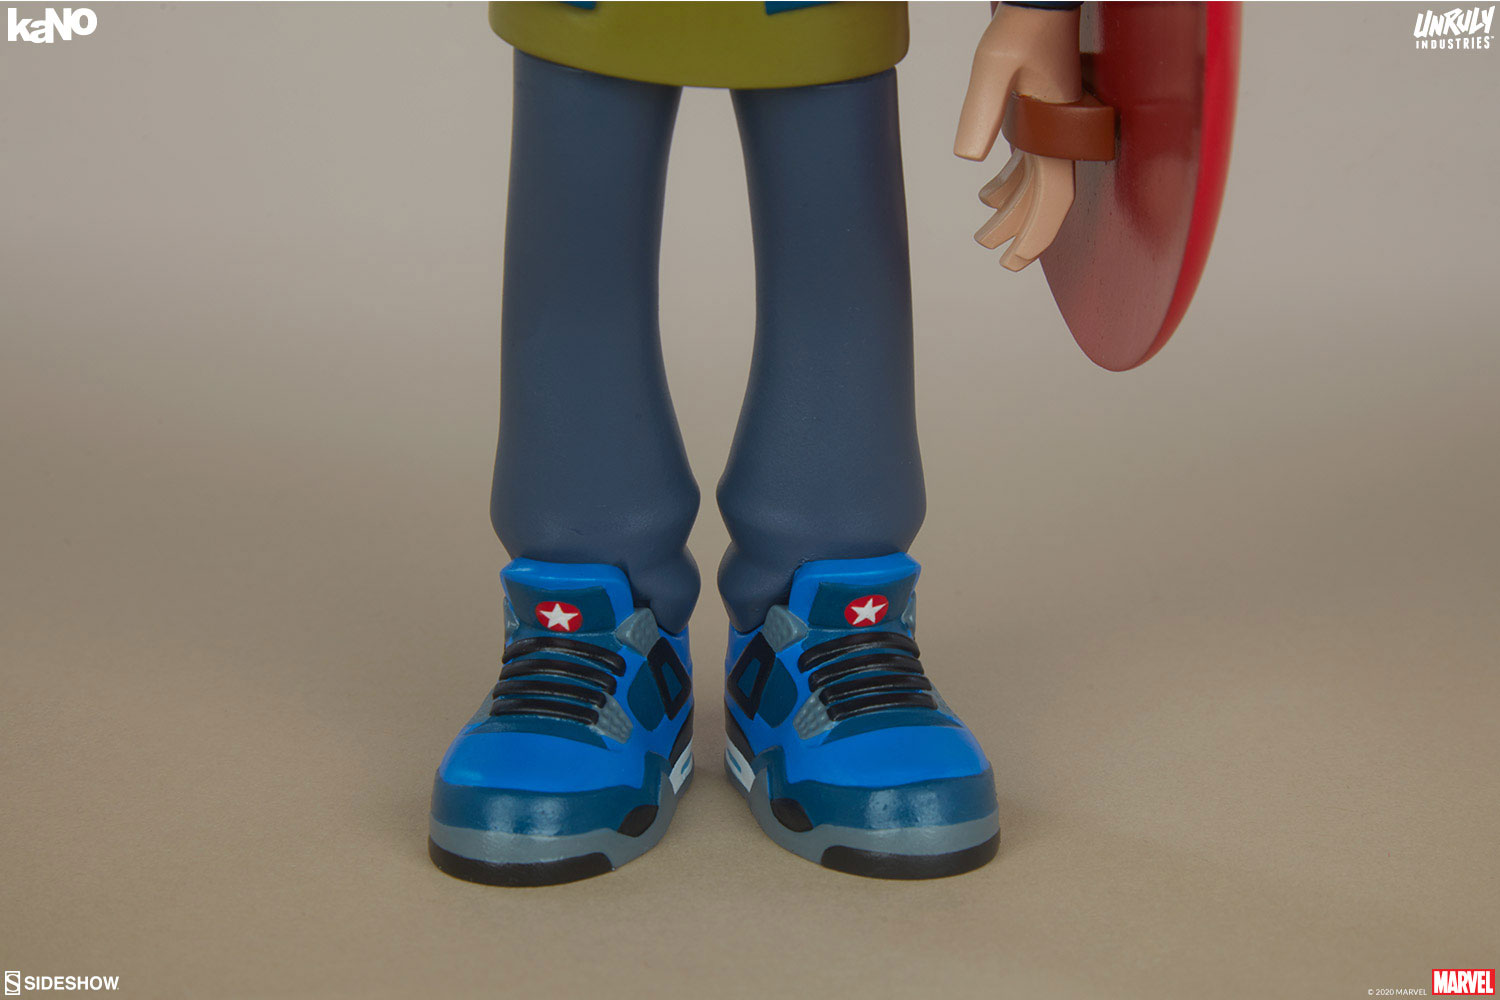 unruly-industries-kano-marvel-captain-america-toy-figure-in-sneakers-5